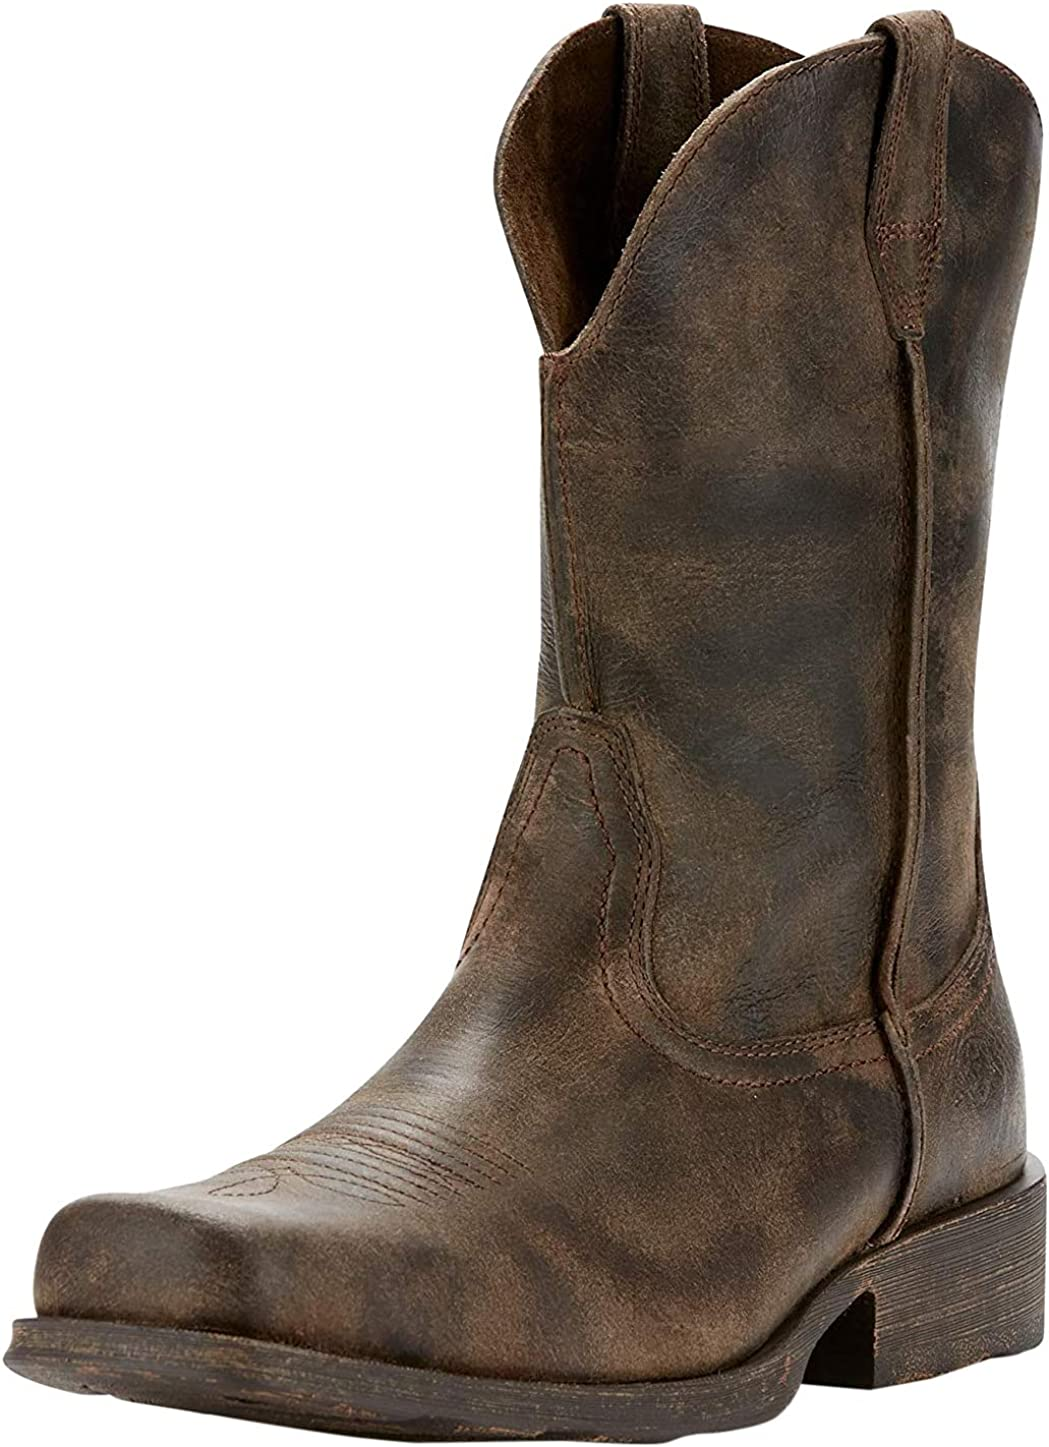 best deal on cowboy boots